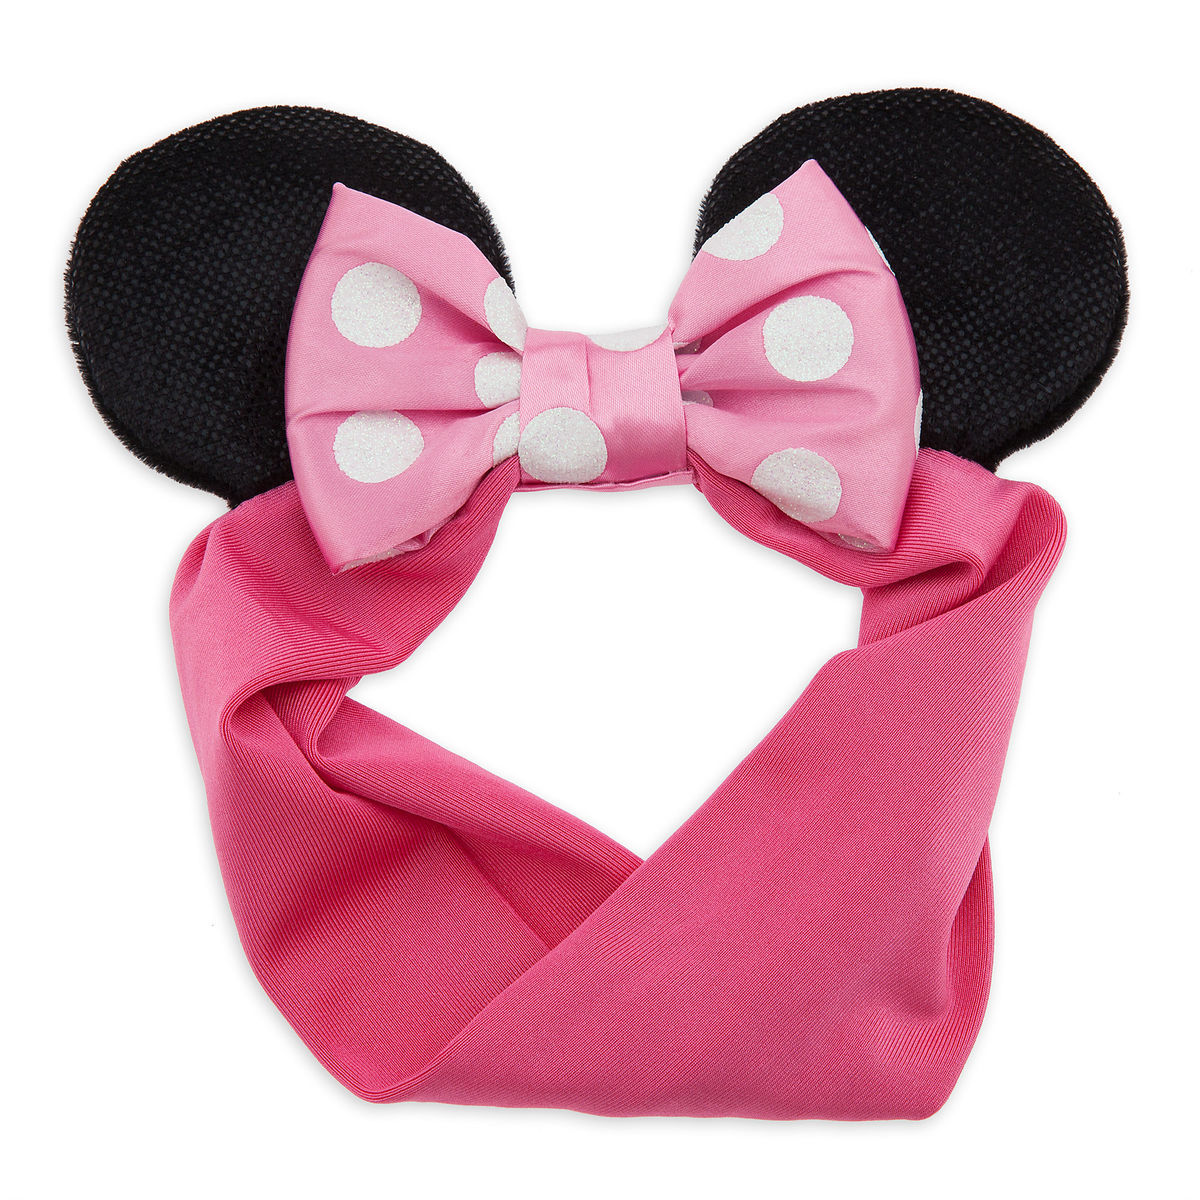 Product Image of Minnie Mouse Ears Headband for Baby   1 9487f064308